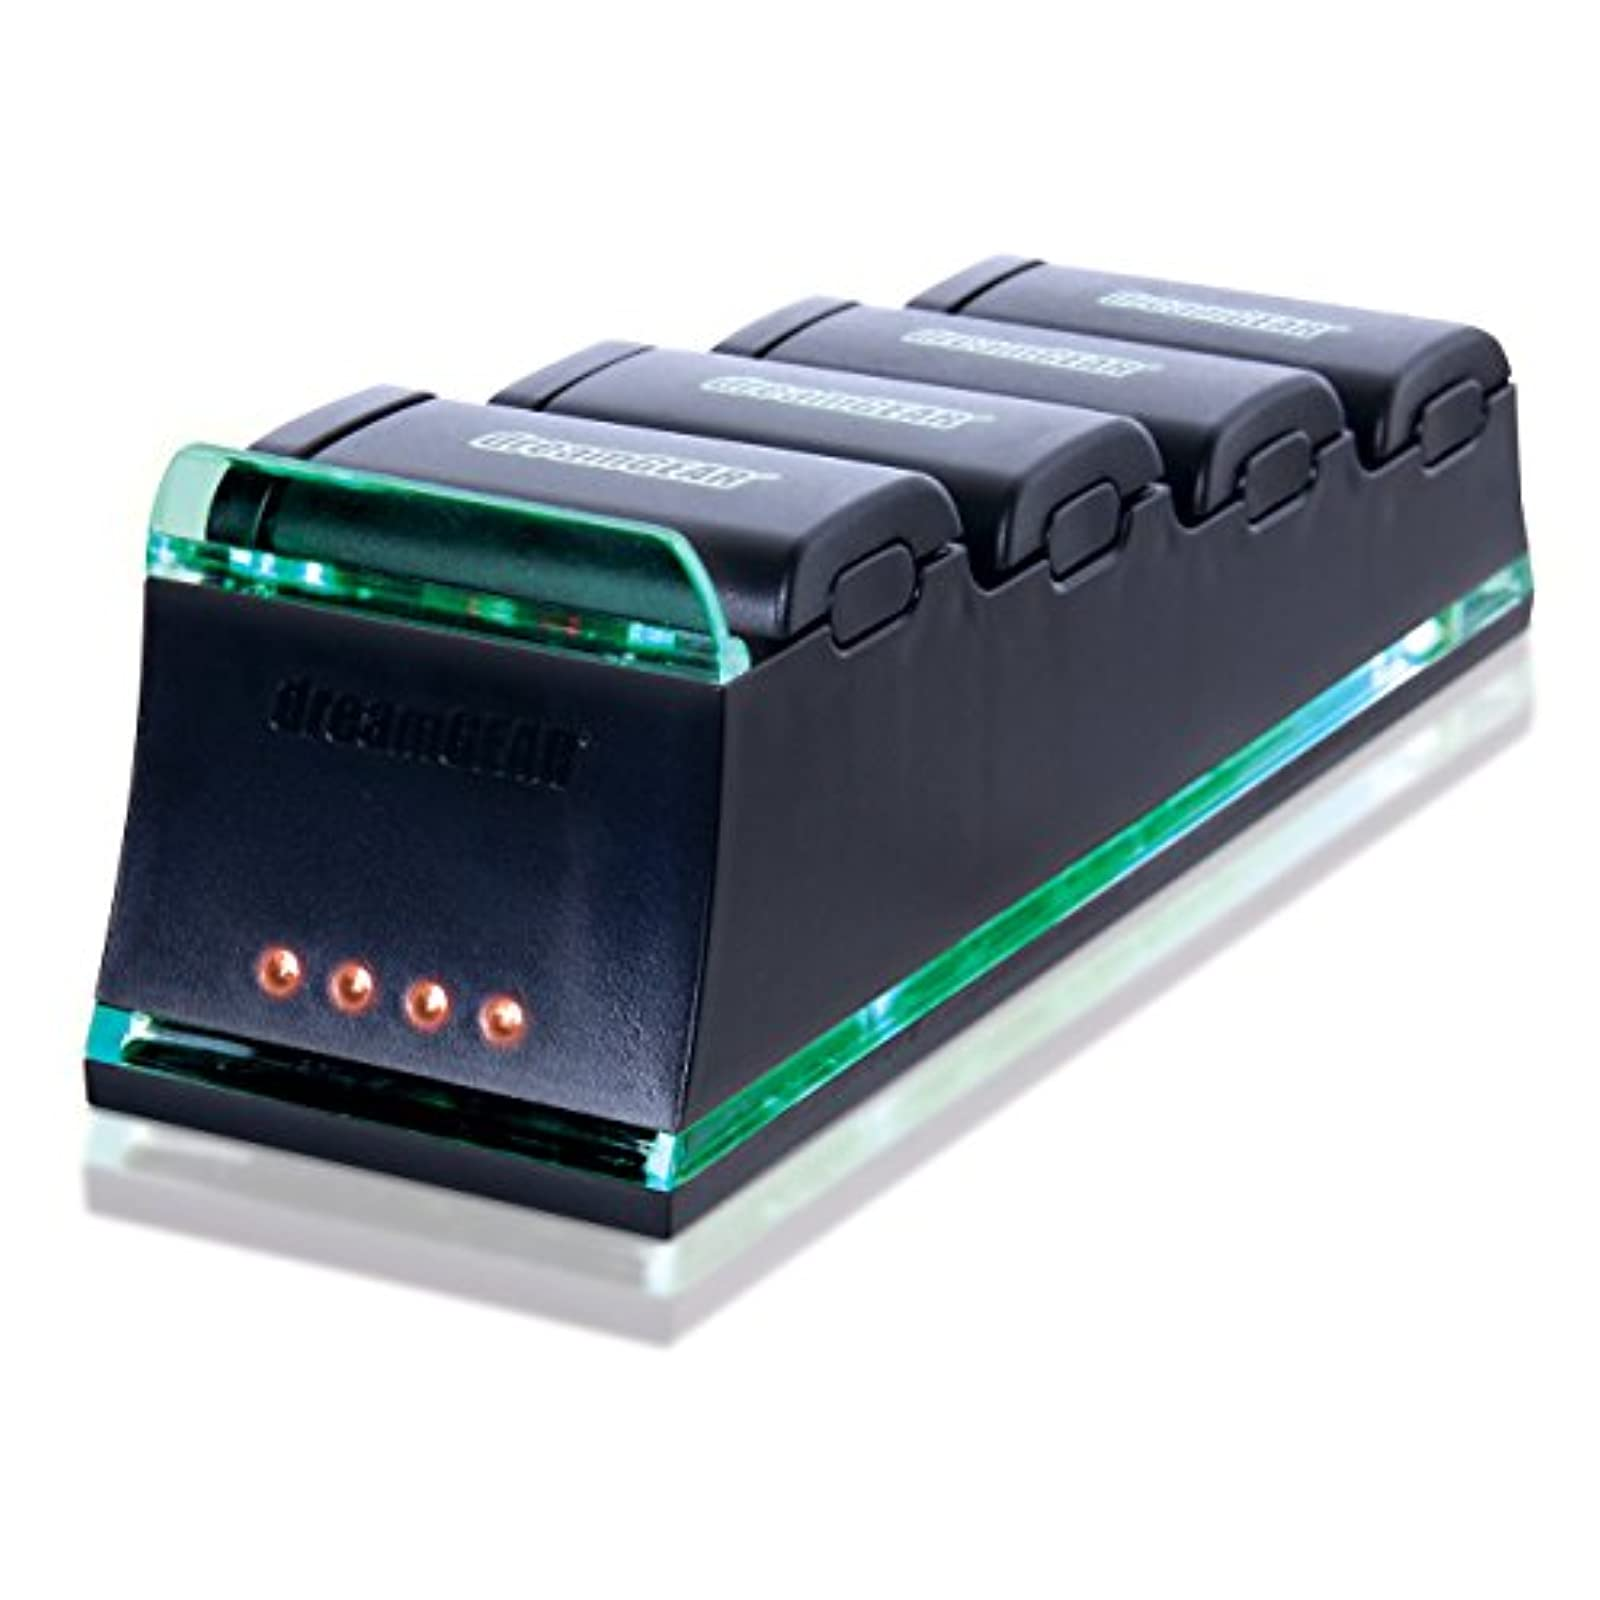 Dreamgear Quad Dock Pro Batteries Sold Separate For Xbox 360